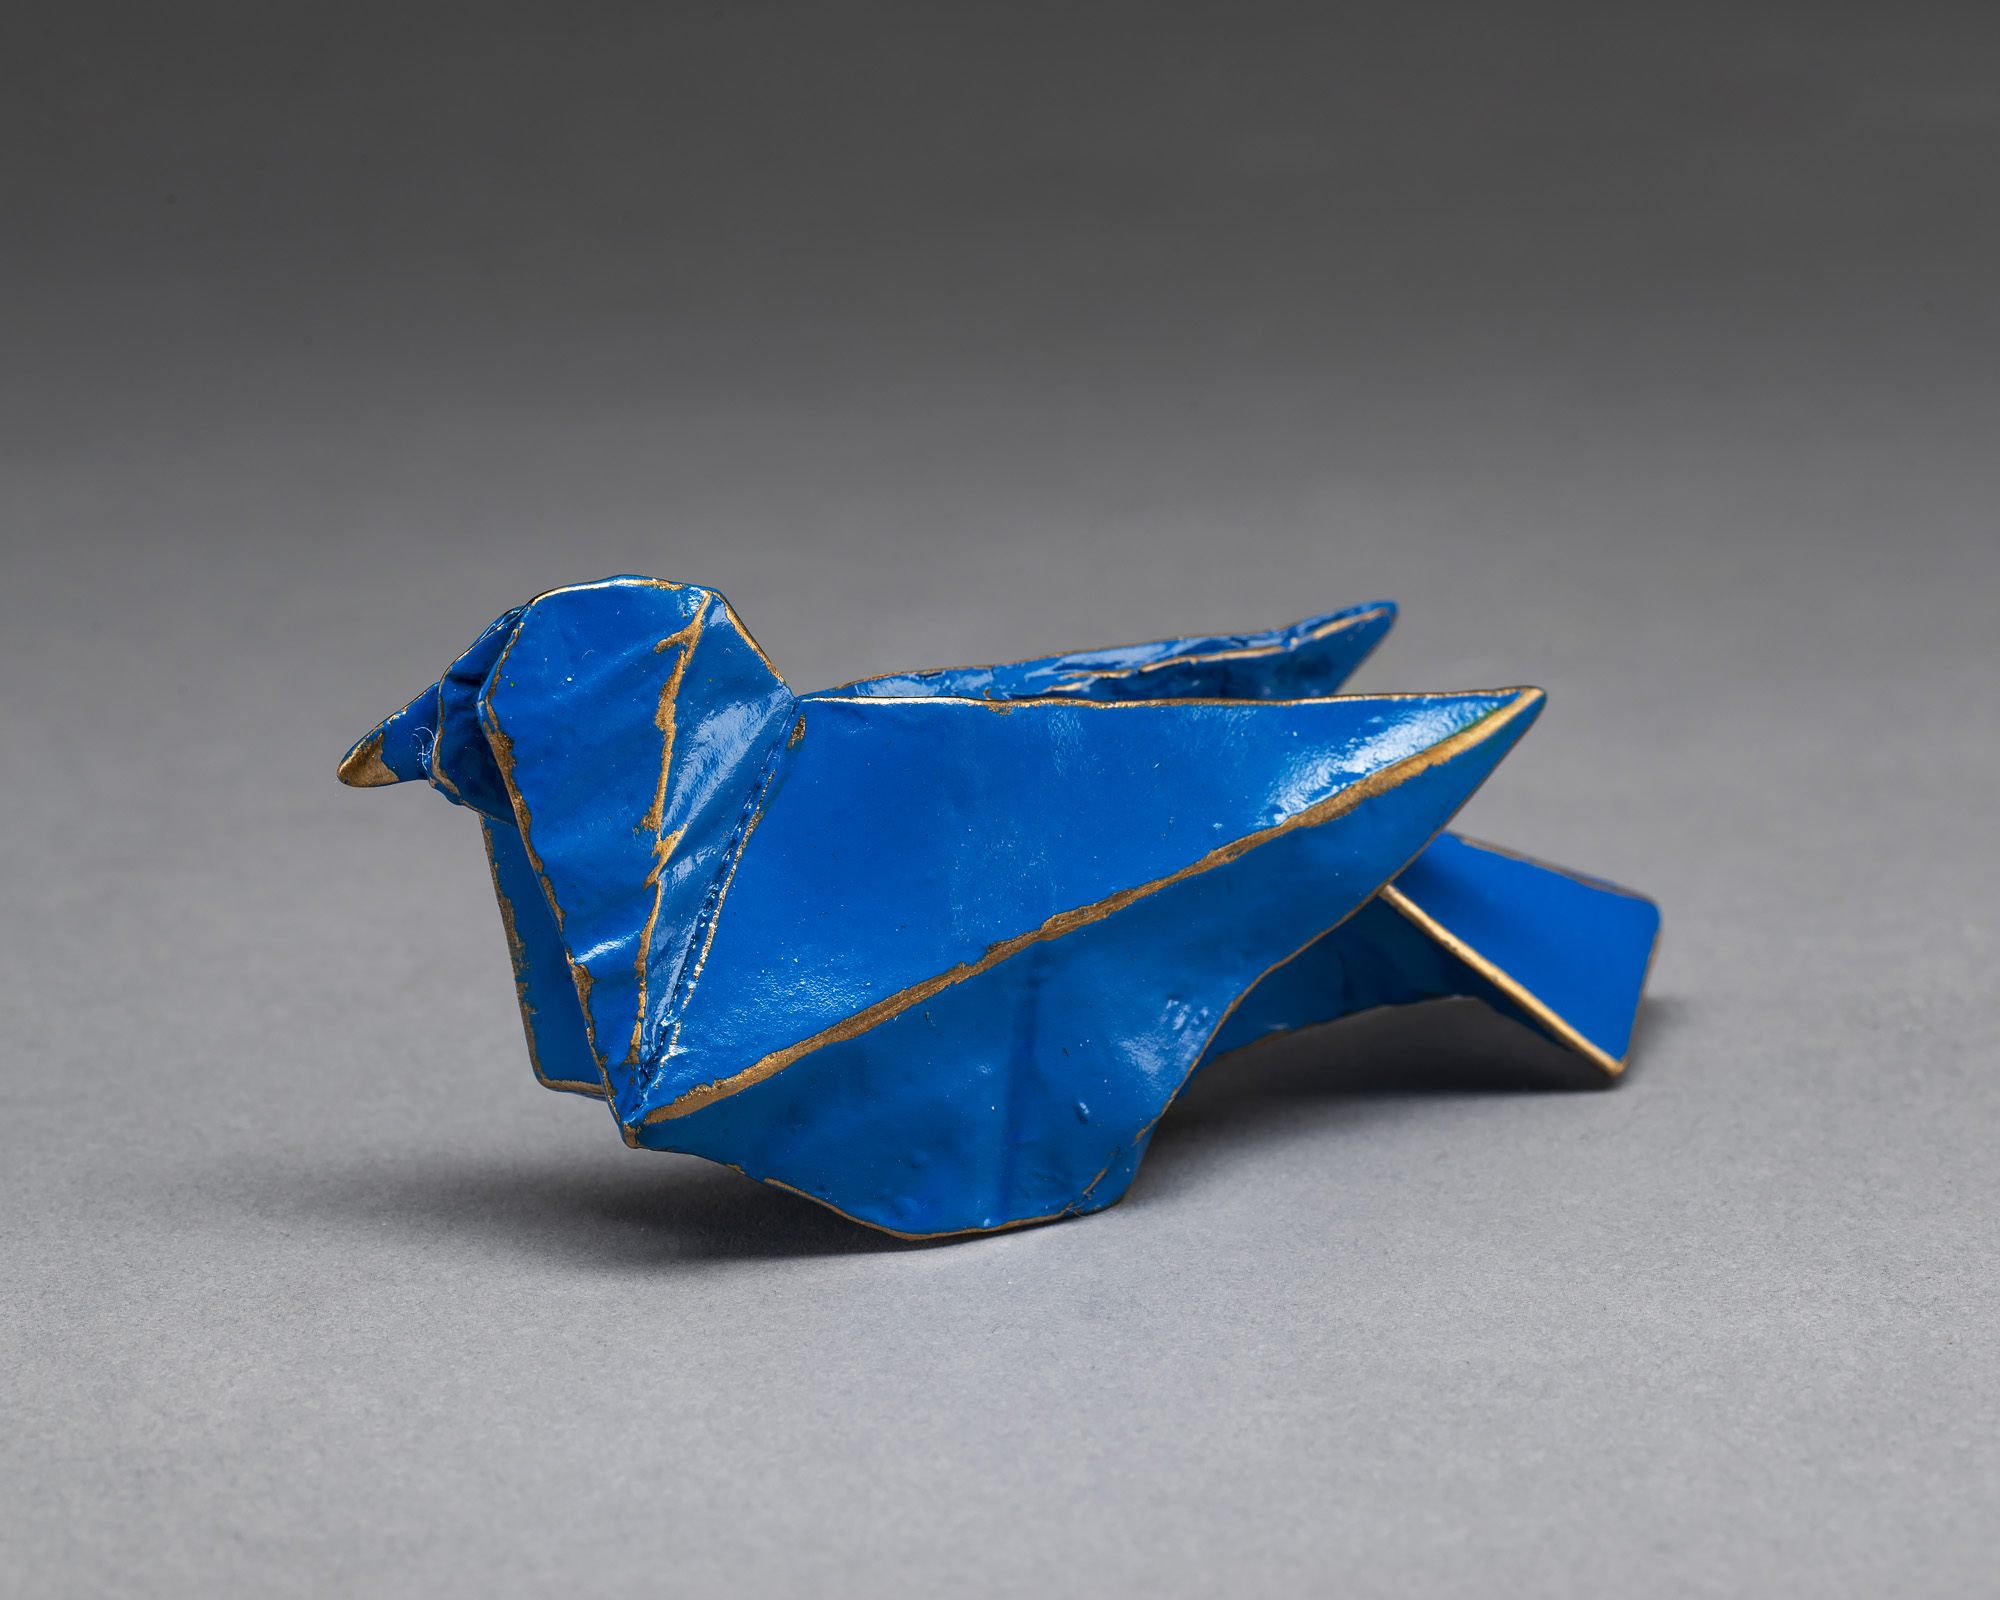 origami blue bird metal sculpture